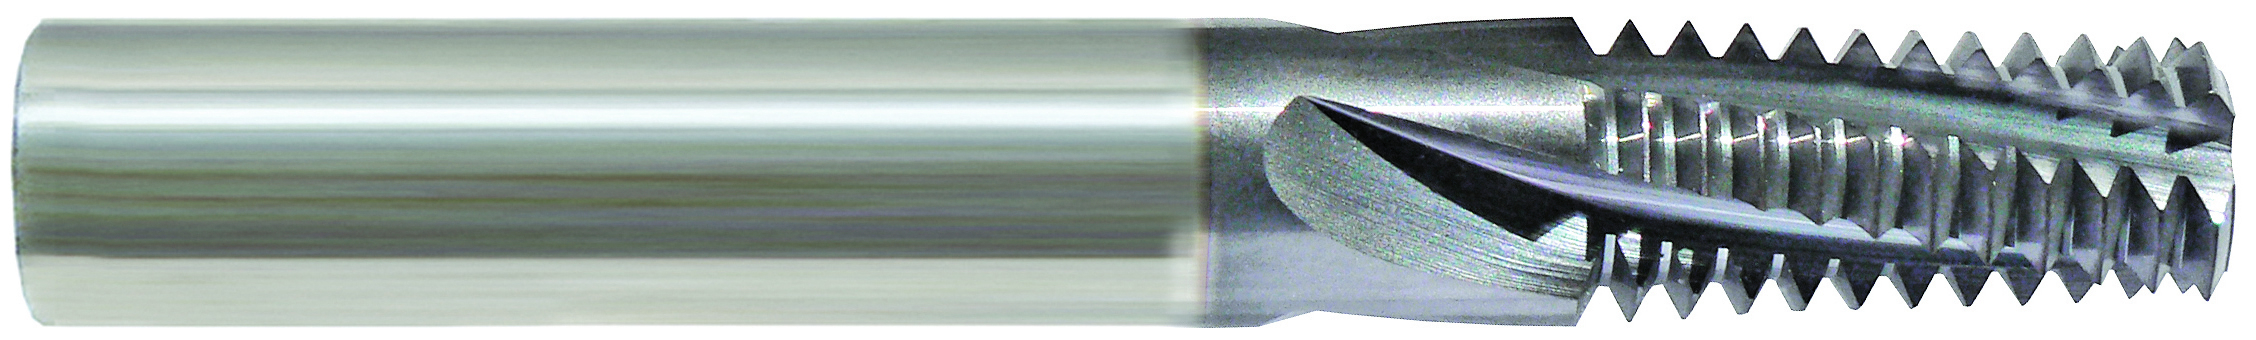 M4-0.70 MC SOLID CARBIDE THREAD MILL